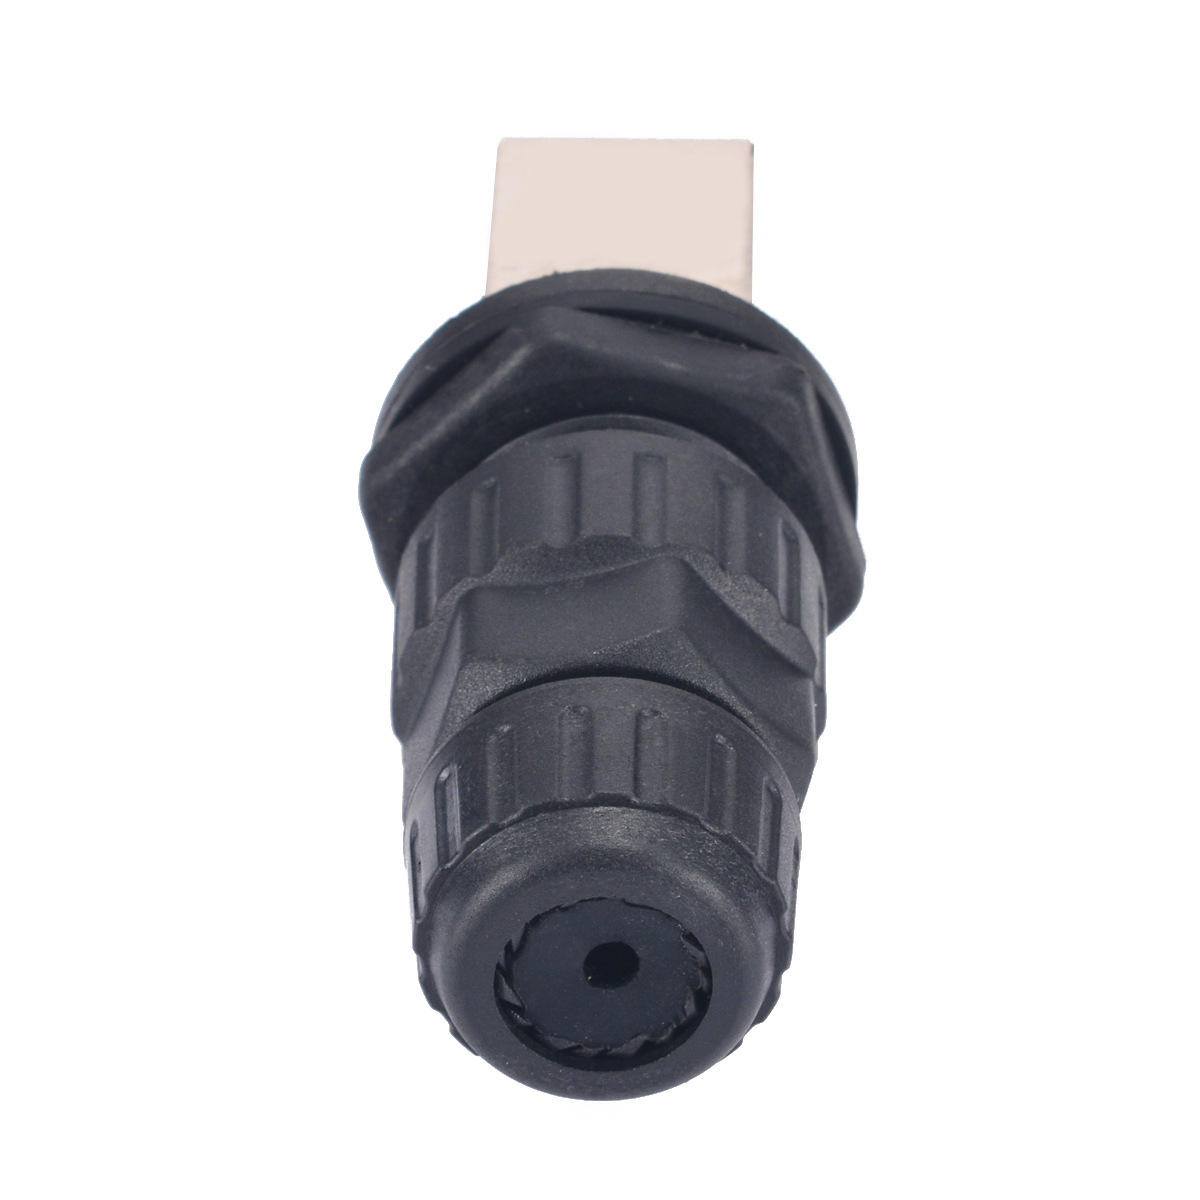 1x RJ45 Interface Connector IP68 Network Outdoor AP Waterproof Connector Adapter Durable 10mm Hole 8 Core